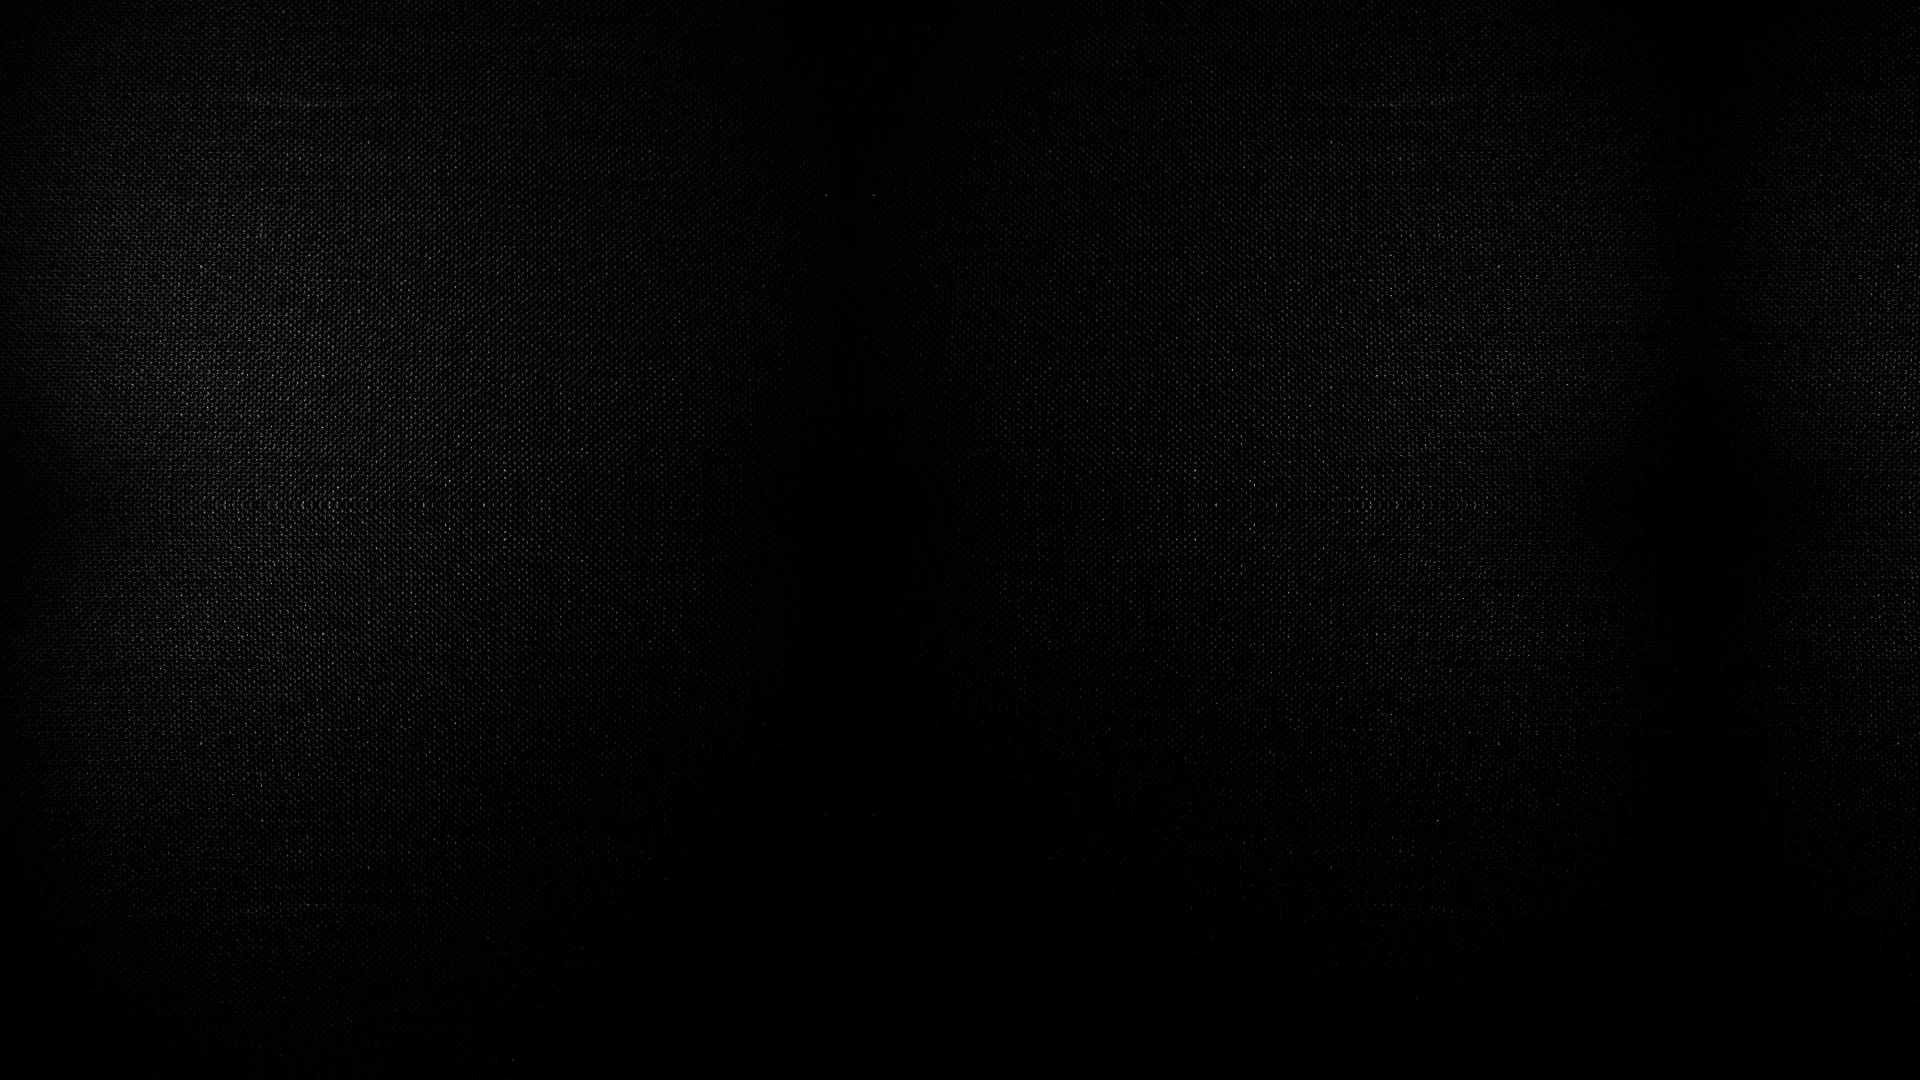 Free Download Fondos Fondo Negro Widescreen Wallpapers Hd Y Fondos De 1920x1200 For Your Desktop Mobile Tablet Explore 75 Black Background Wallpaper Black And White Arrow Wallpaper Pink And